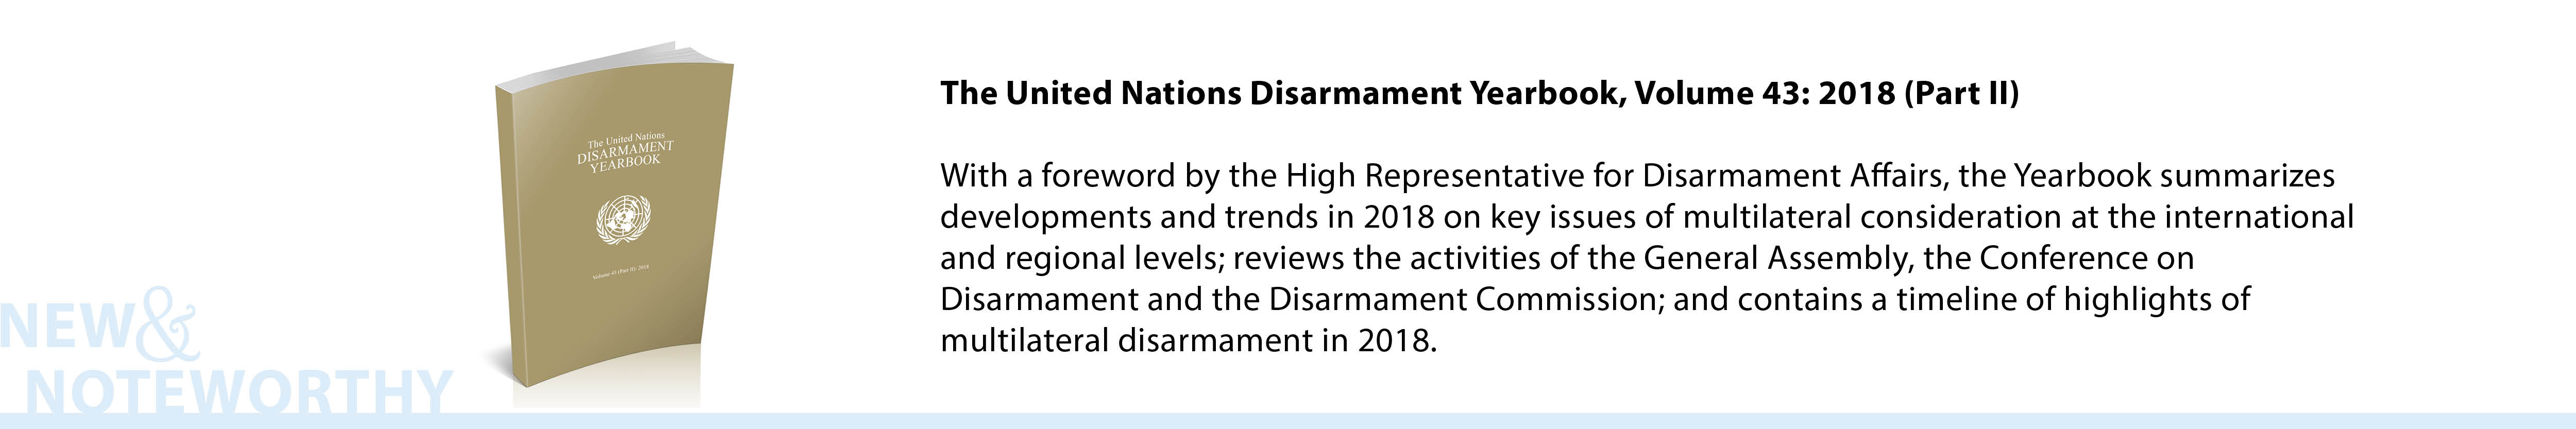 The United Nations Disarmament Yearbook, Volume 43: 2018 (Part II) - With a foreword by the High Representative for Disarmament Affairs, the Yearbook summarizes developments and trends in 2018 on key issues of multilateral consideration at the international and regional levels; reviews the activities of the General Assembly, the Conference on Disarmament and the Disarmament Commission; and contains a timeline of highlights of multilateral disarmament in 2018.